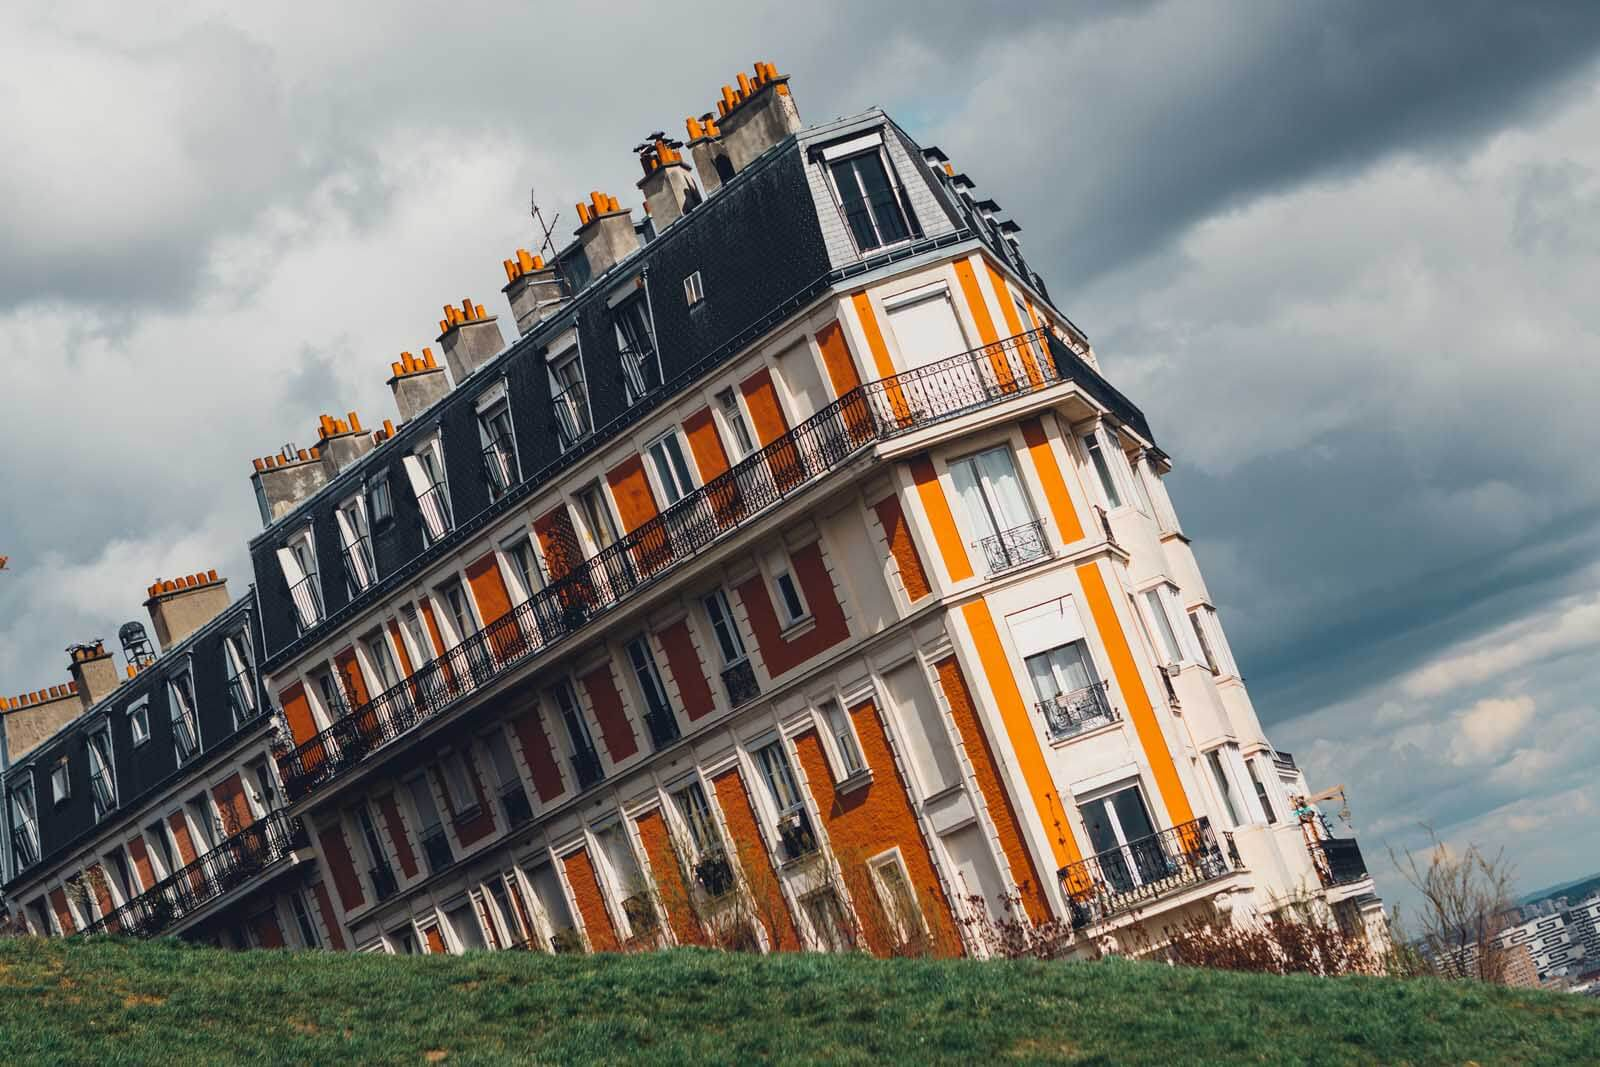 the sinking house in Montmartre Paris